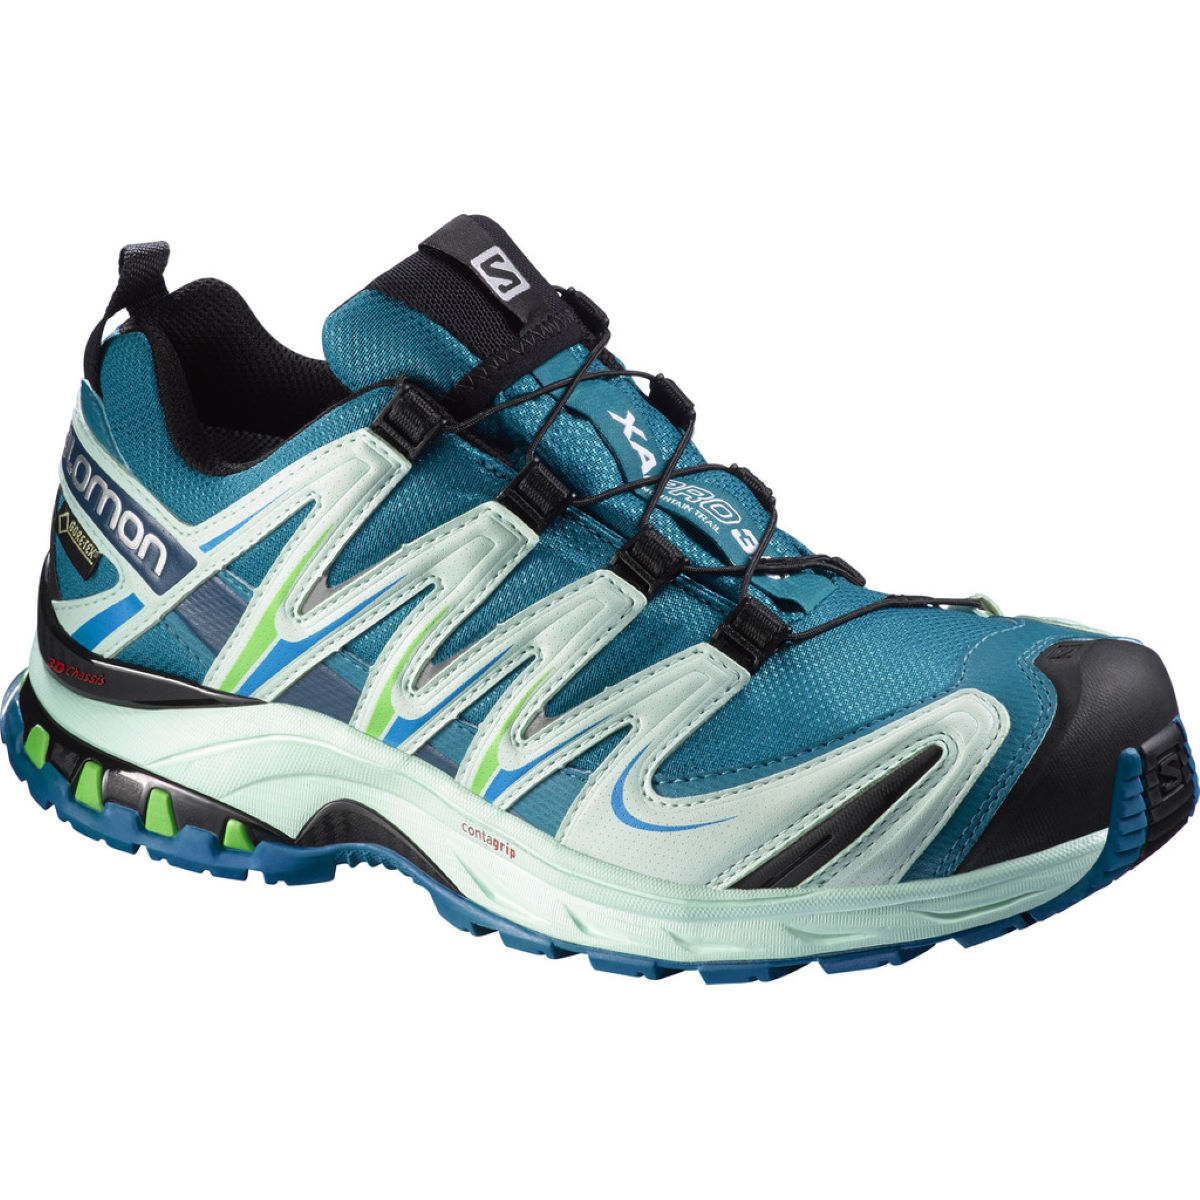 Salomon Women's Xa Pro 3D Gtx® Shoes - AW15